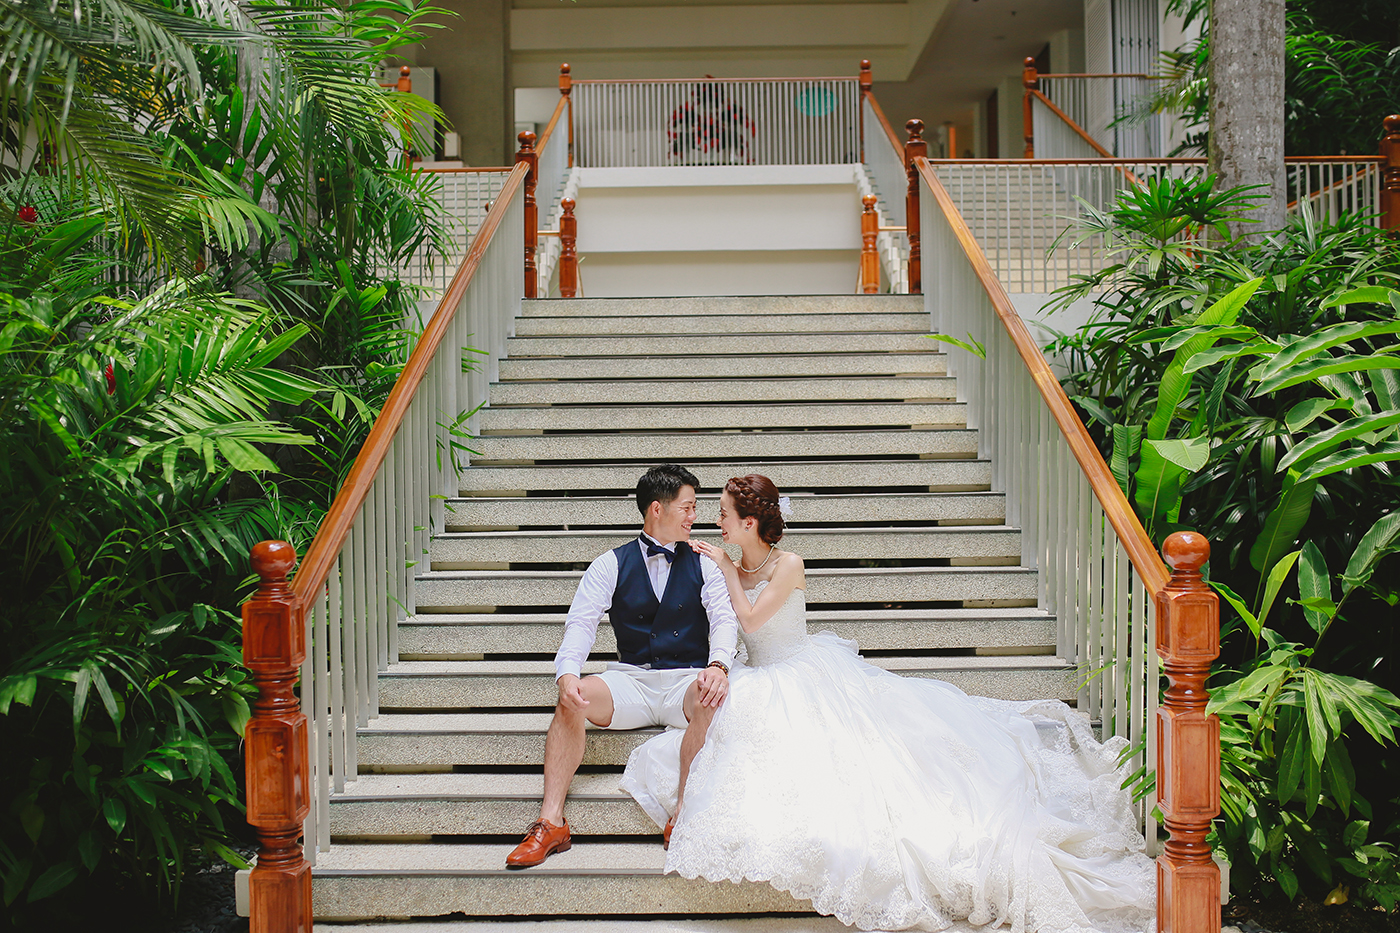 Shangri-la Mactan Post Wedding - Yudai & Kana